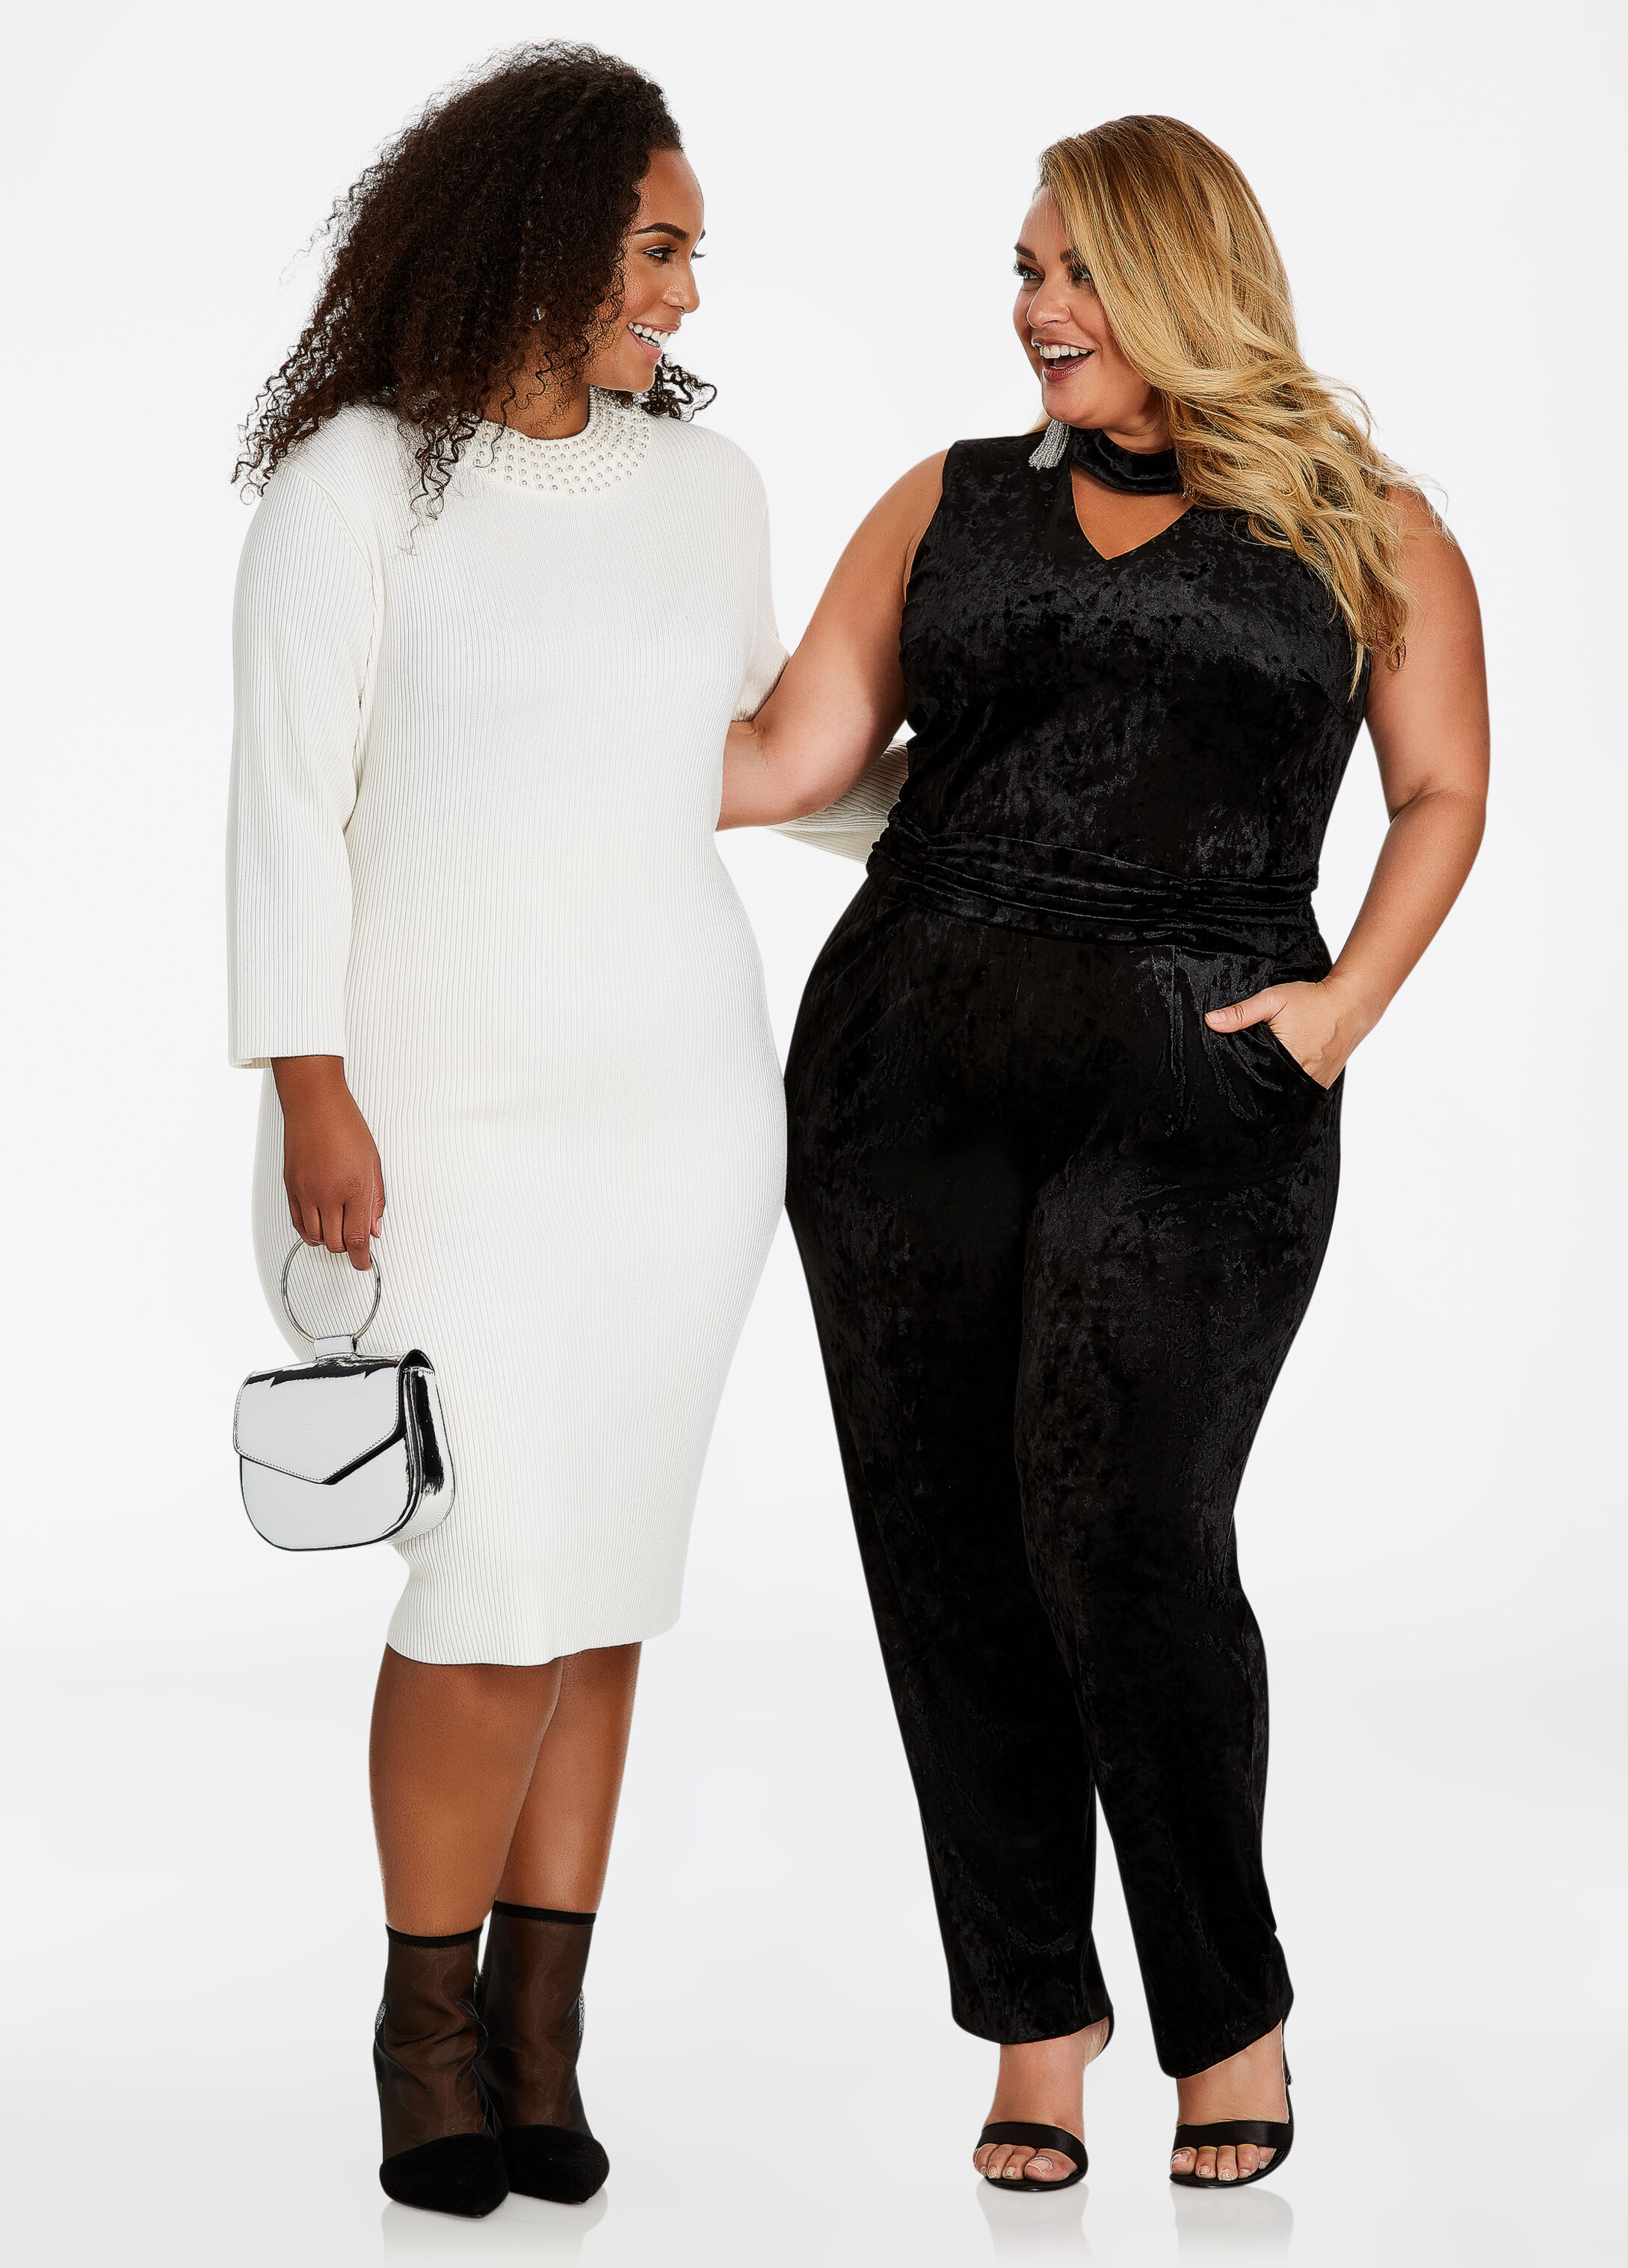 Plus Size Outfits - Besties_9-19-17